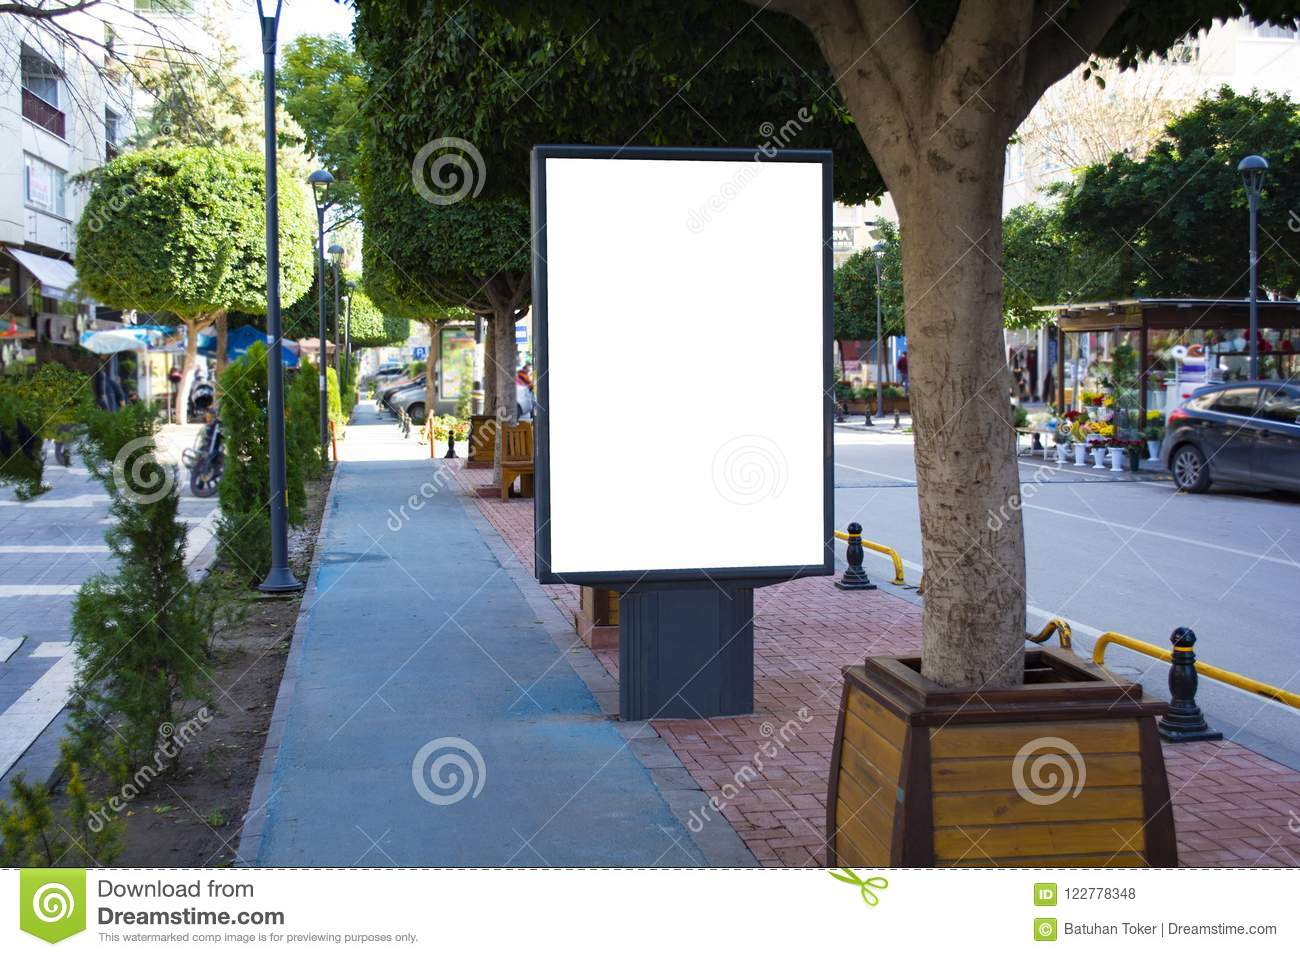 Blank vertical street billboard stand with city background. Blank street billboard poster stand on city background. 3d illustratio